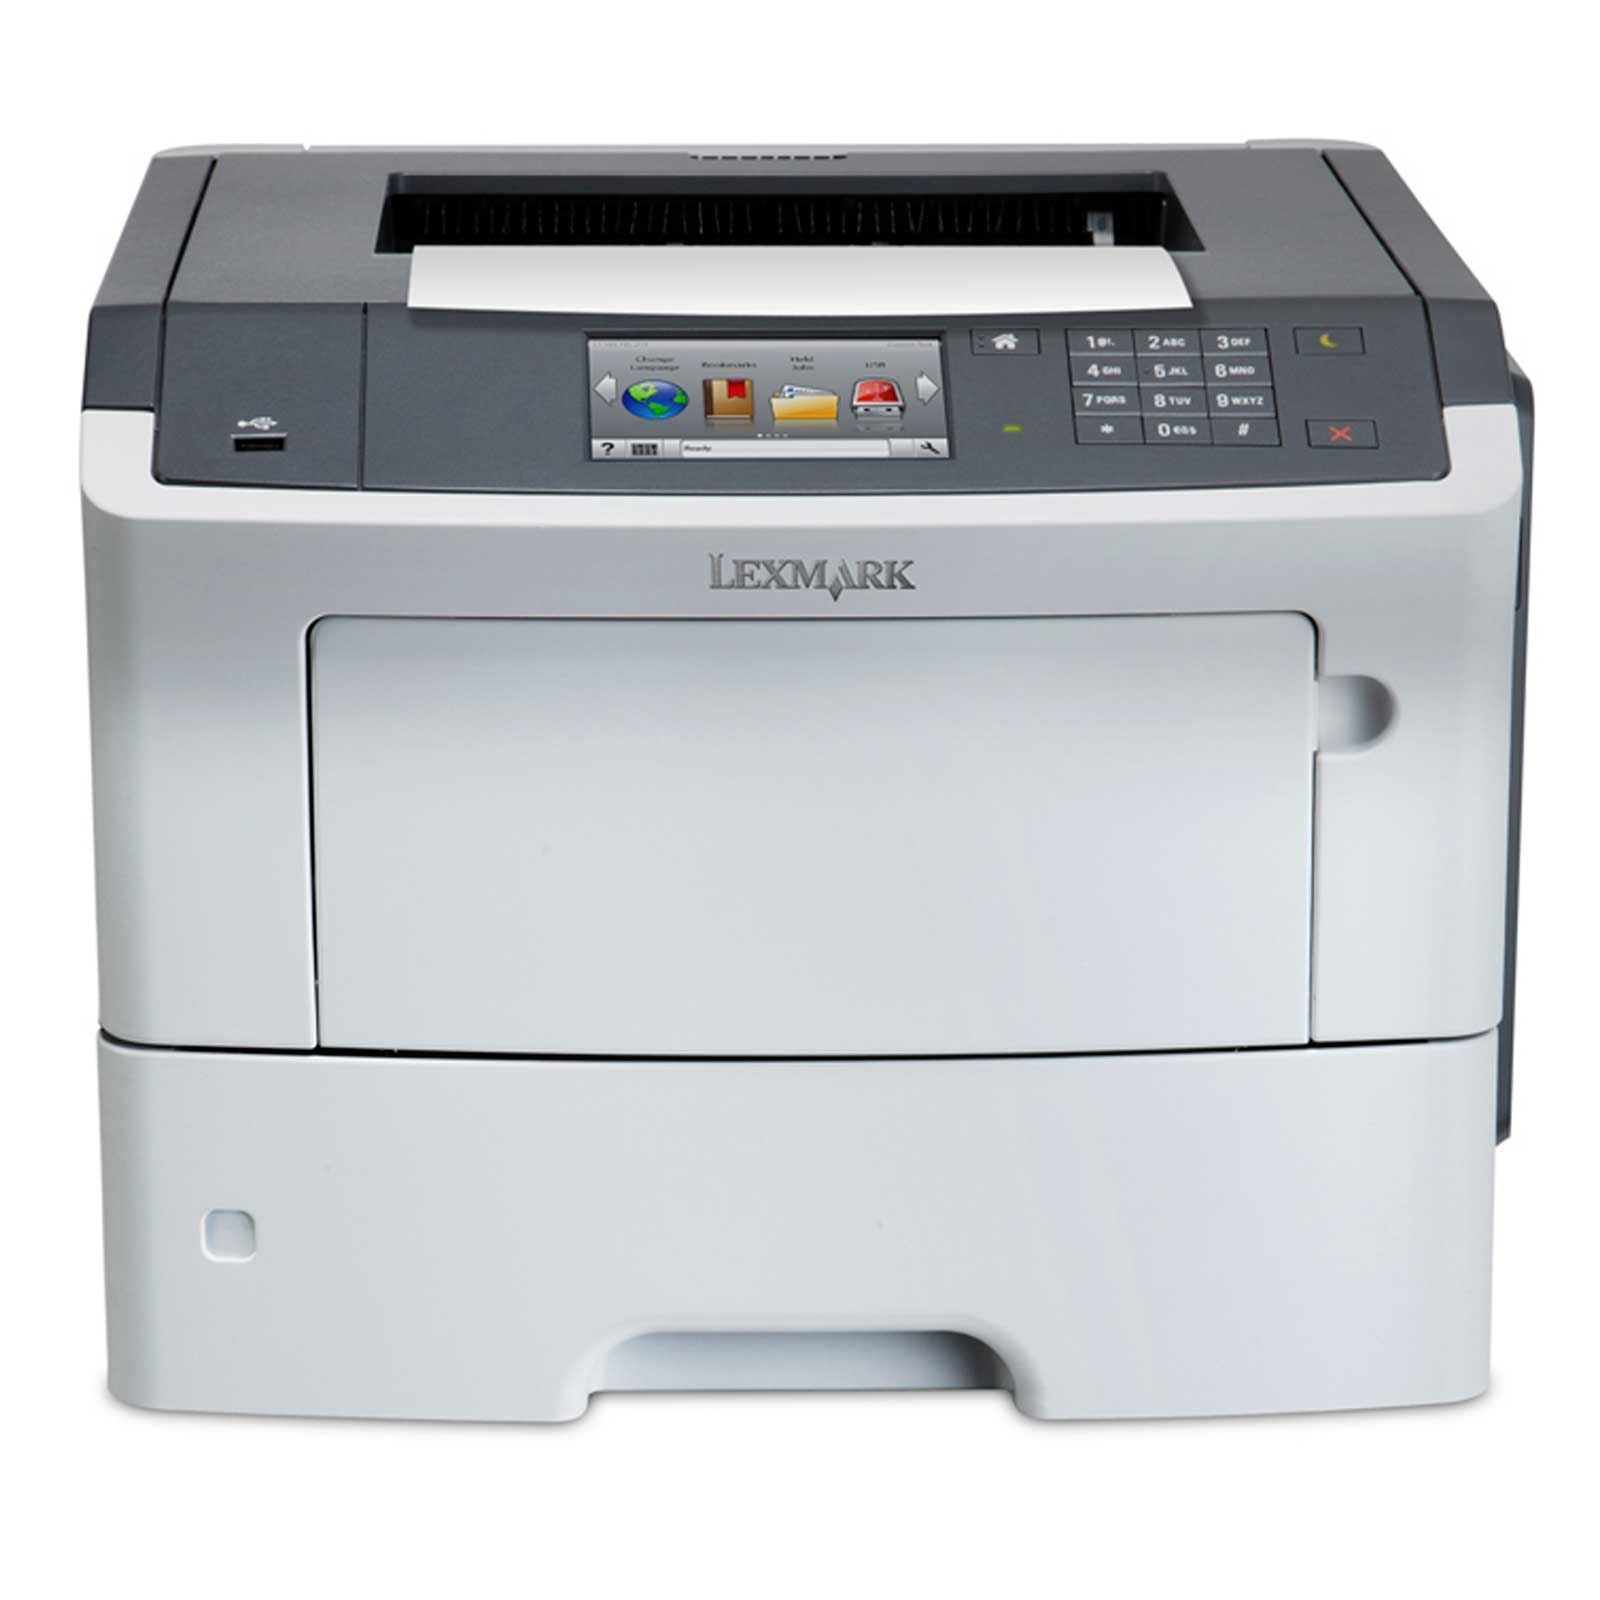 Download Driver: Lexmark Pro5500 MFP Universal PCL5e